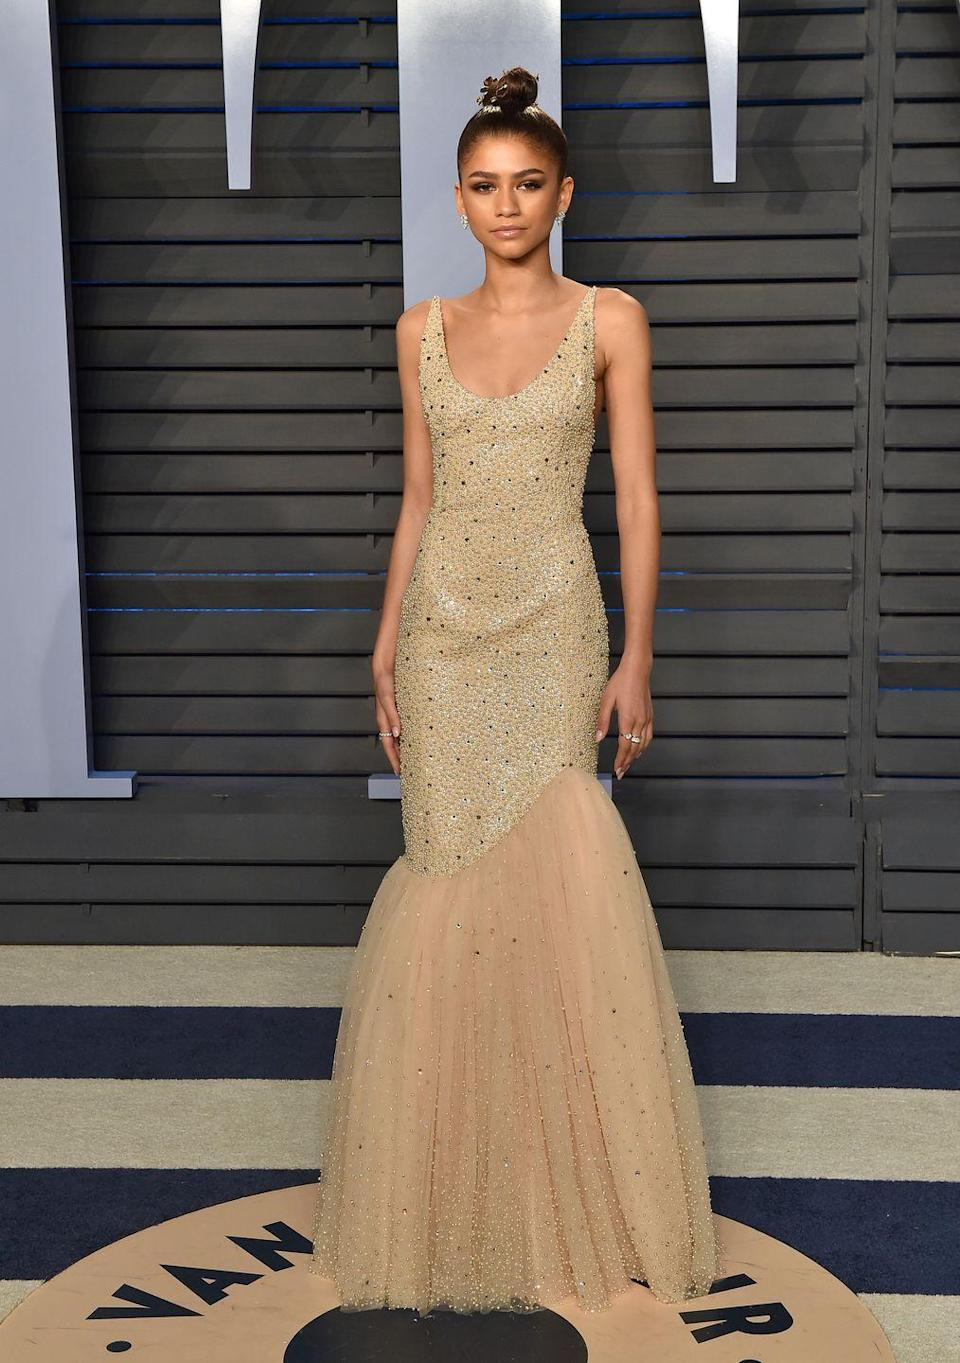 <p>At the 2018 <em>Vanity Fair</em> Oscar Party, she resembled a gold statue in this shimmery Michael Kors gown.</p>